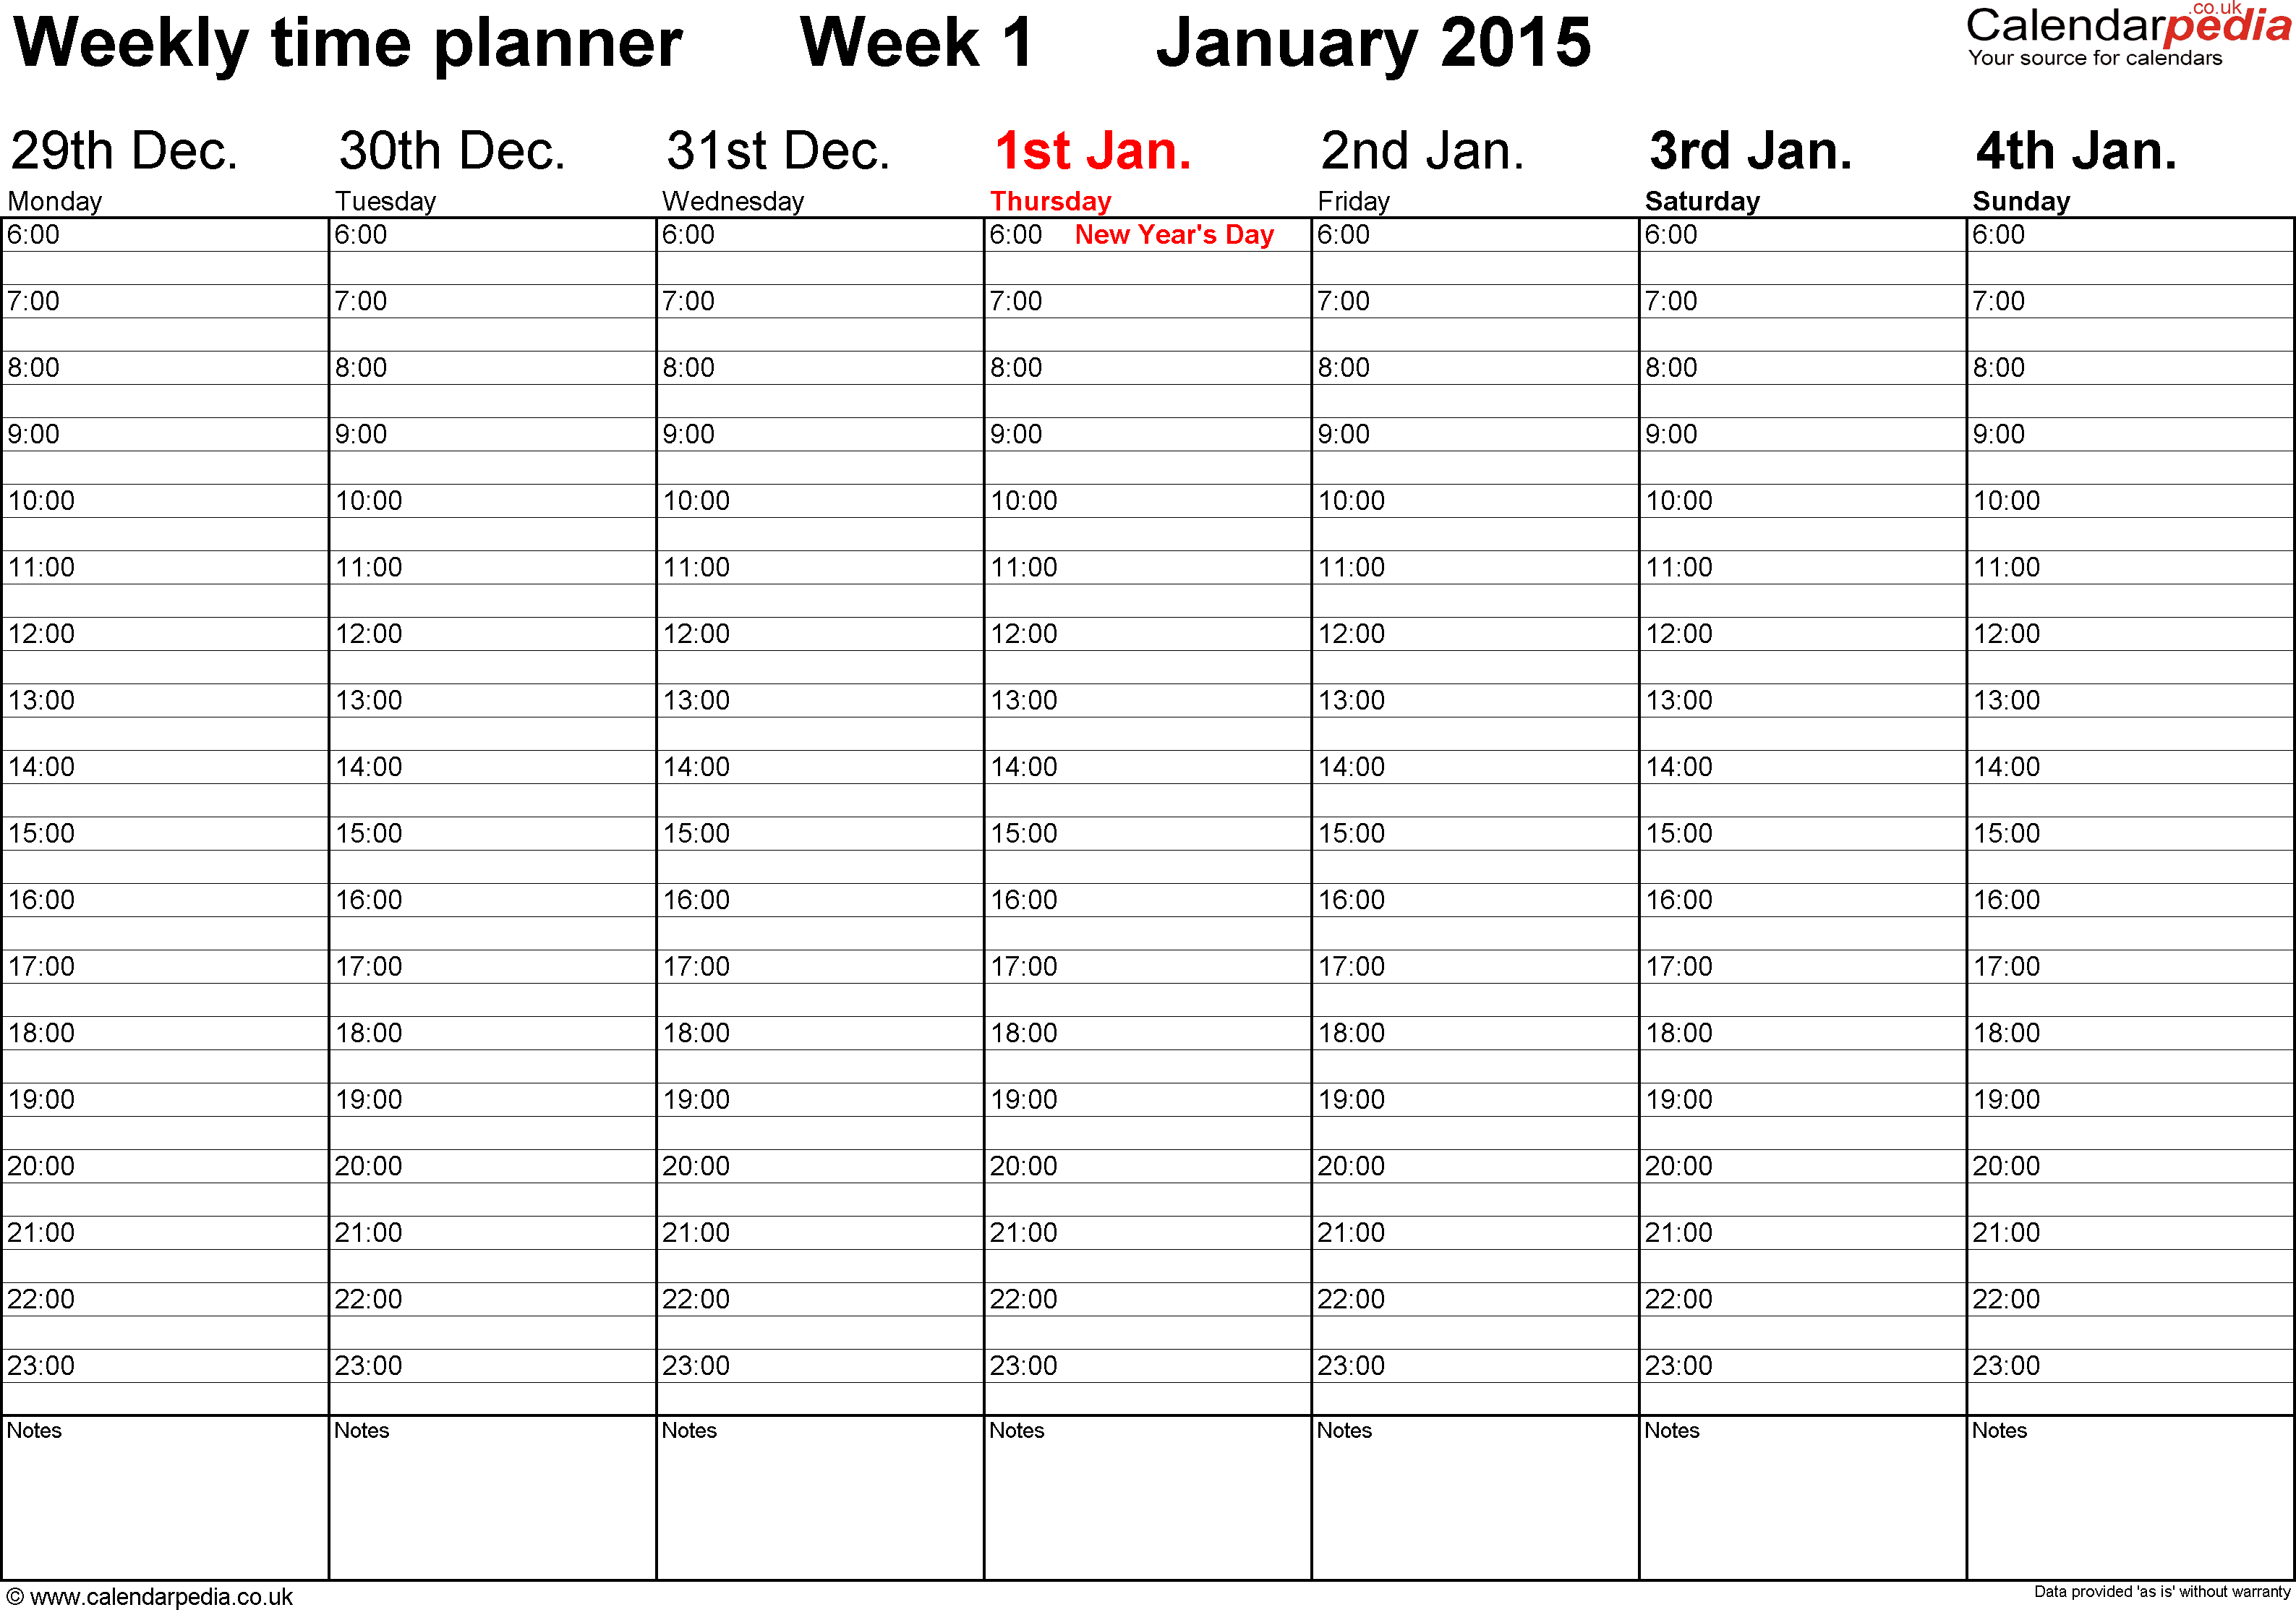 Daily Planner Calendar : Weekly calendar uk free printable templates for word